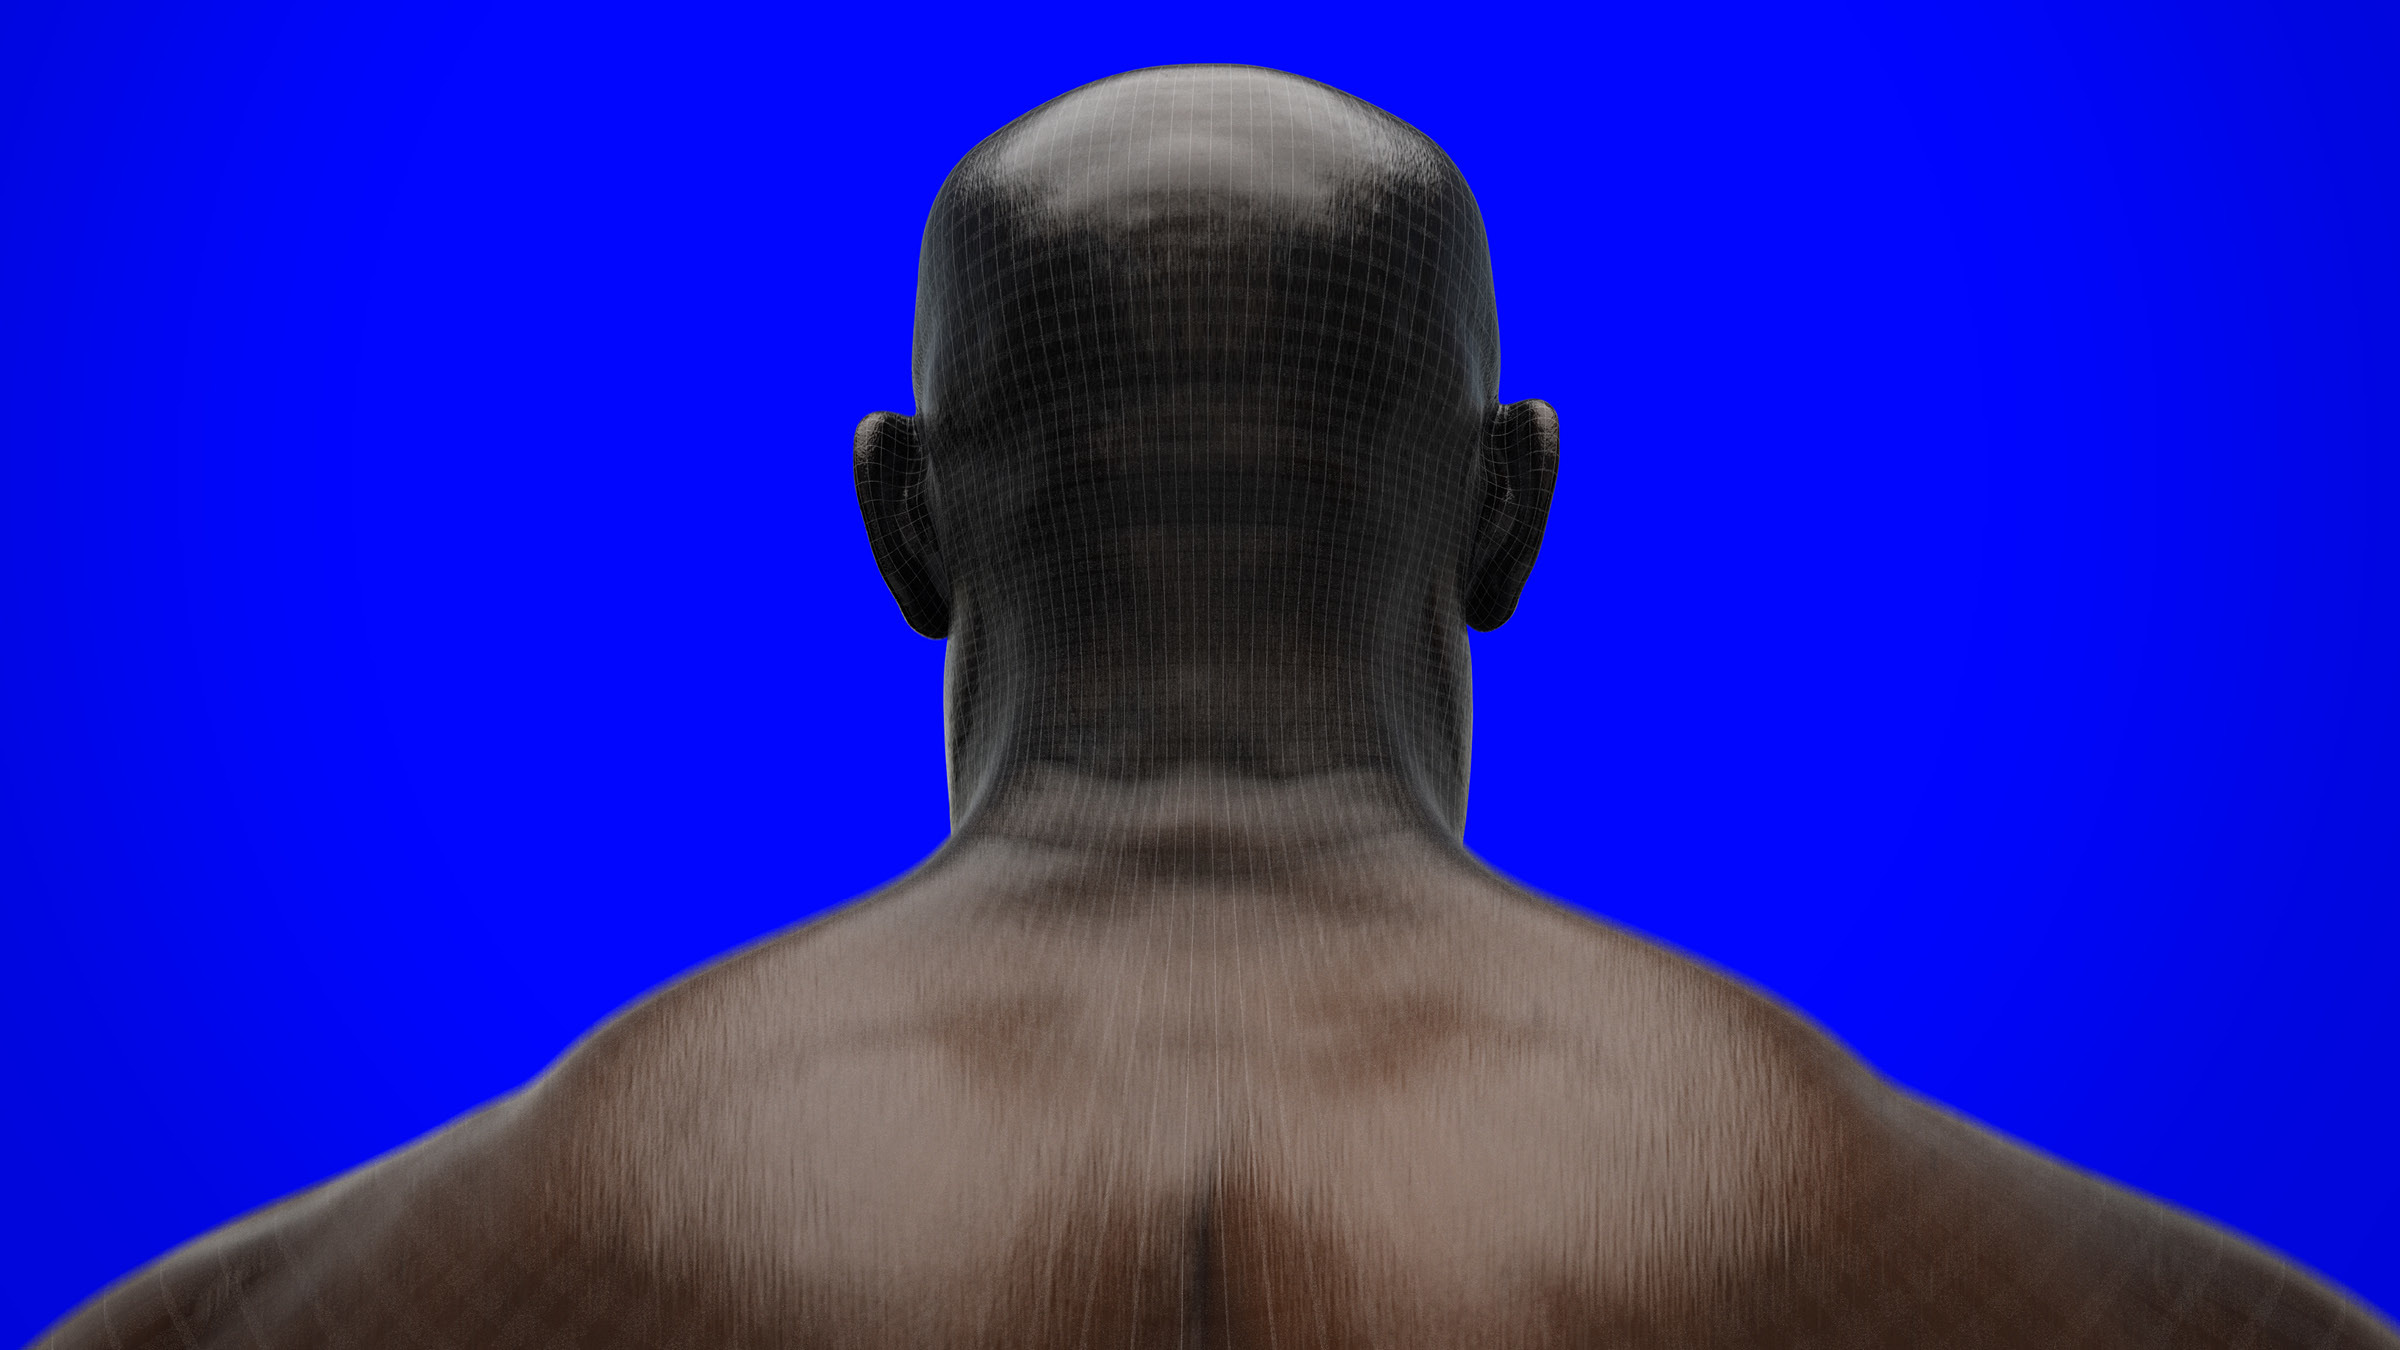 back of man's head and shoulders